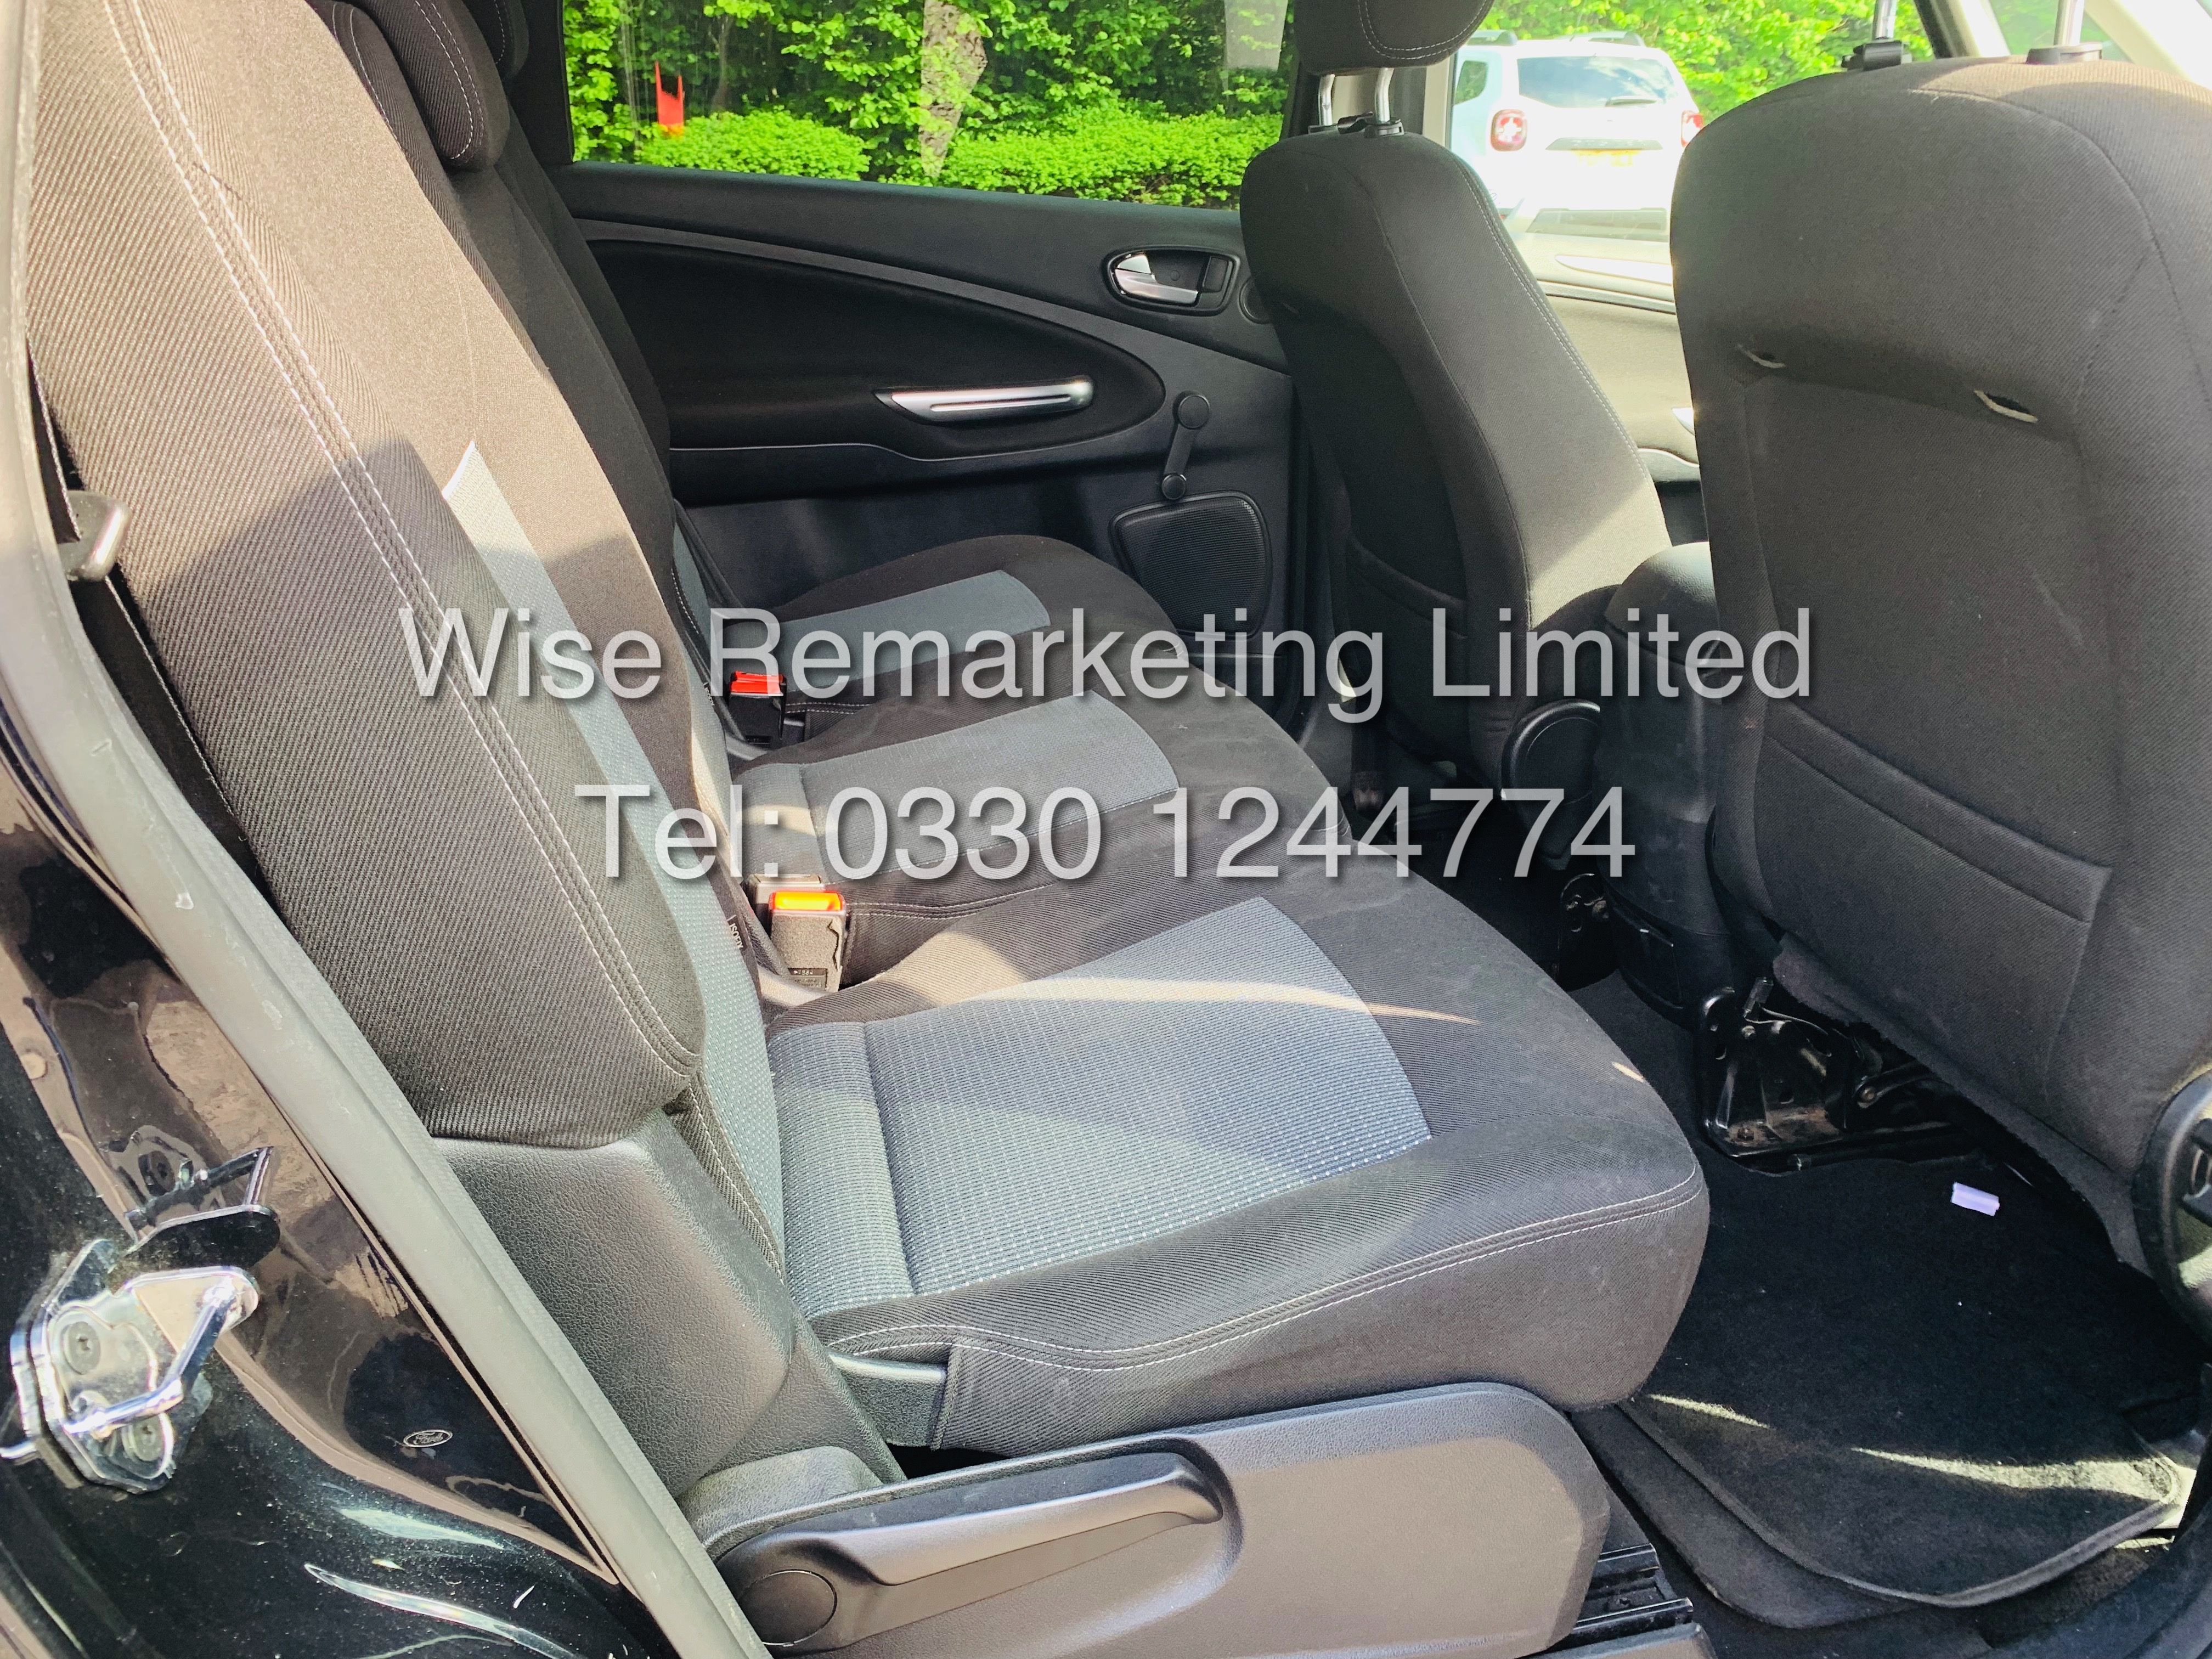 FORD GALAXY ZETEC 2.0L TDCI AUTO 7 SEATER MPV 63 REG *1 OWNER* - Image 11 of 18